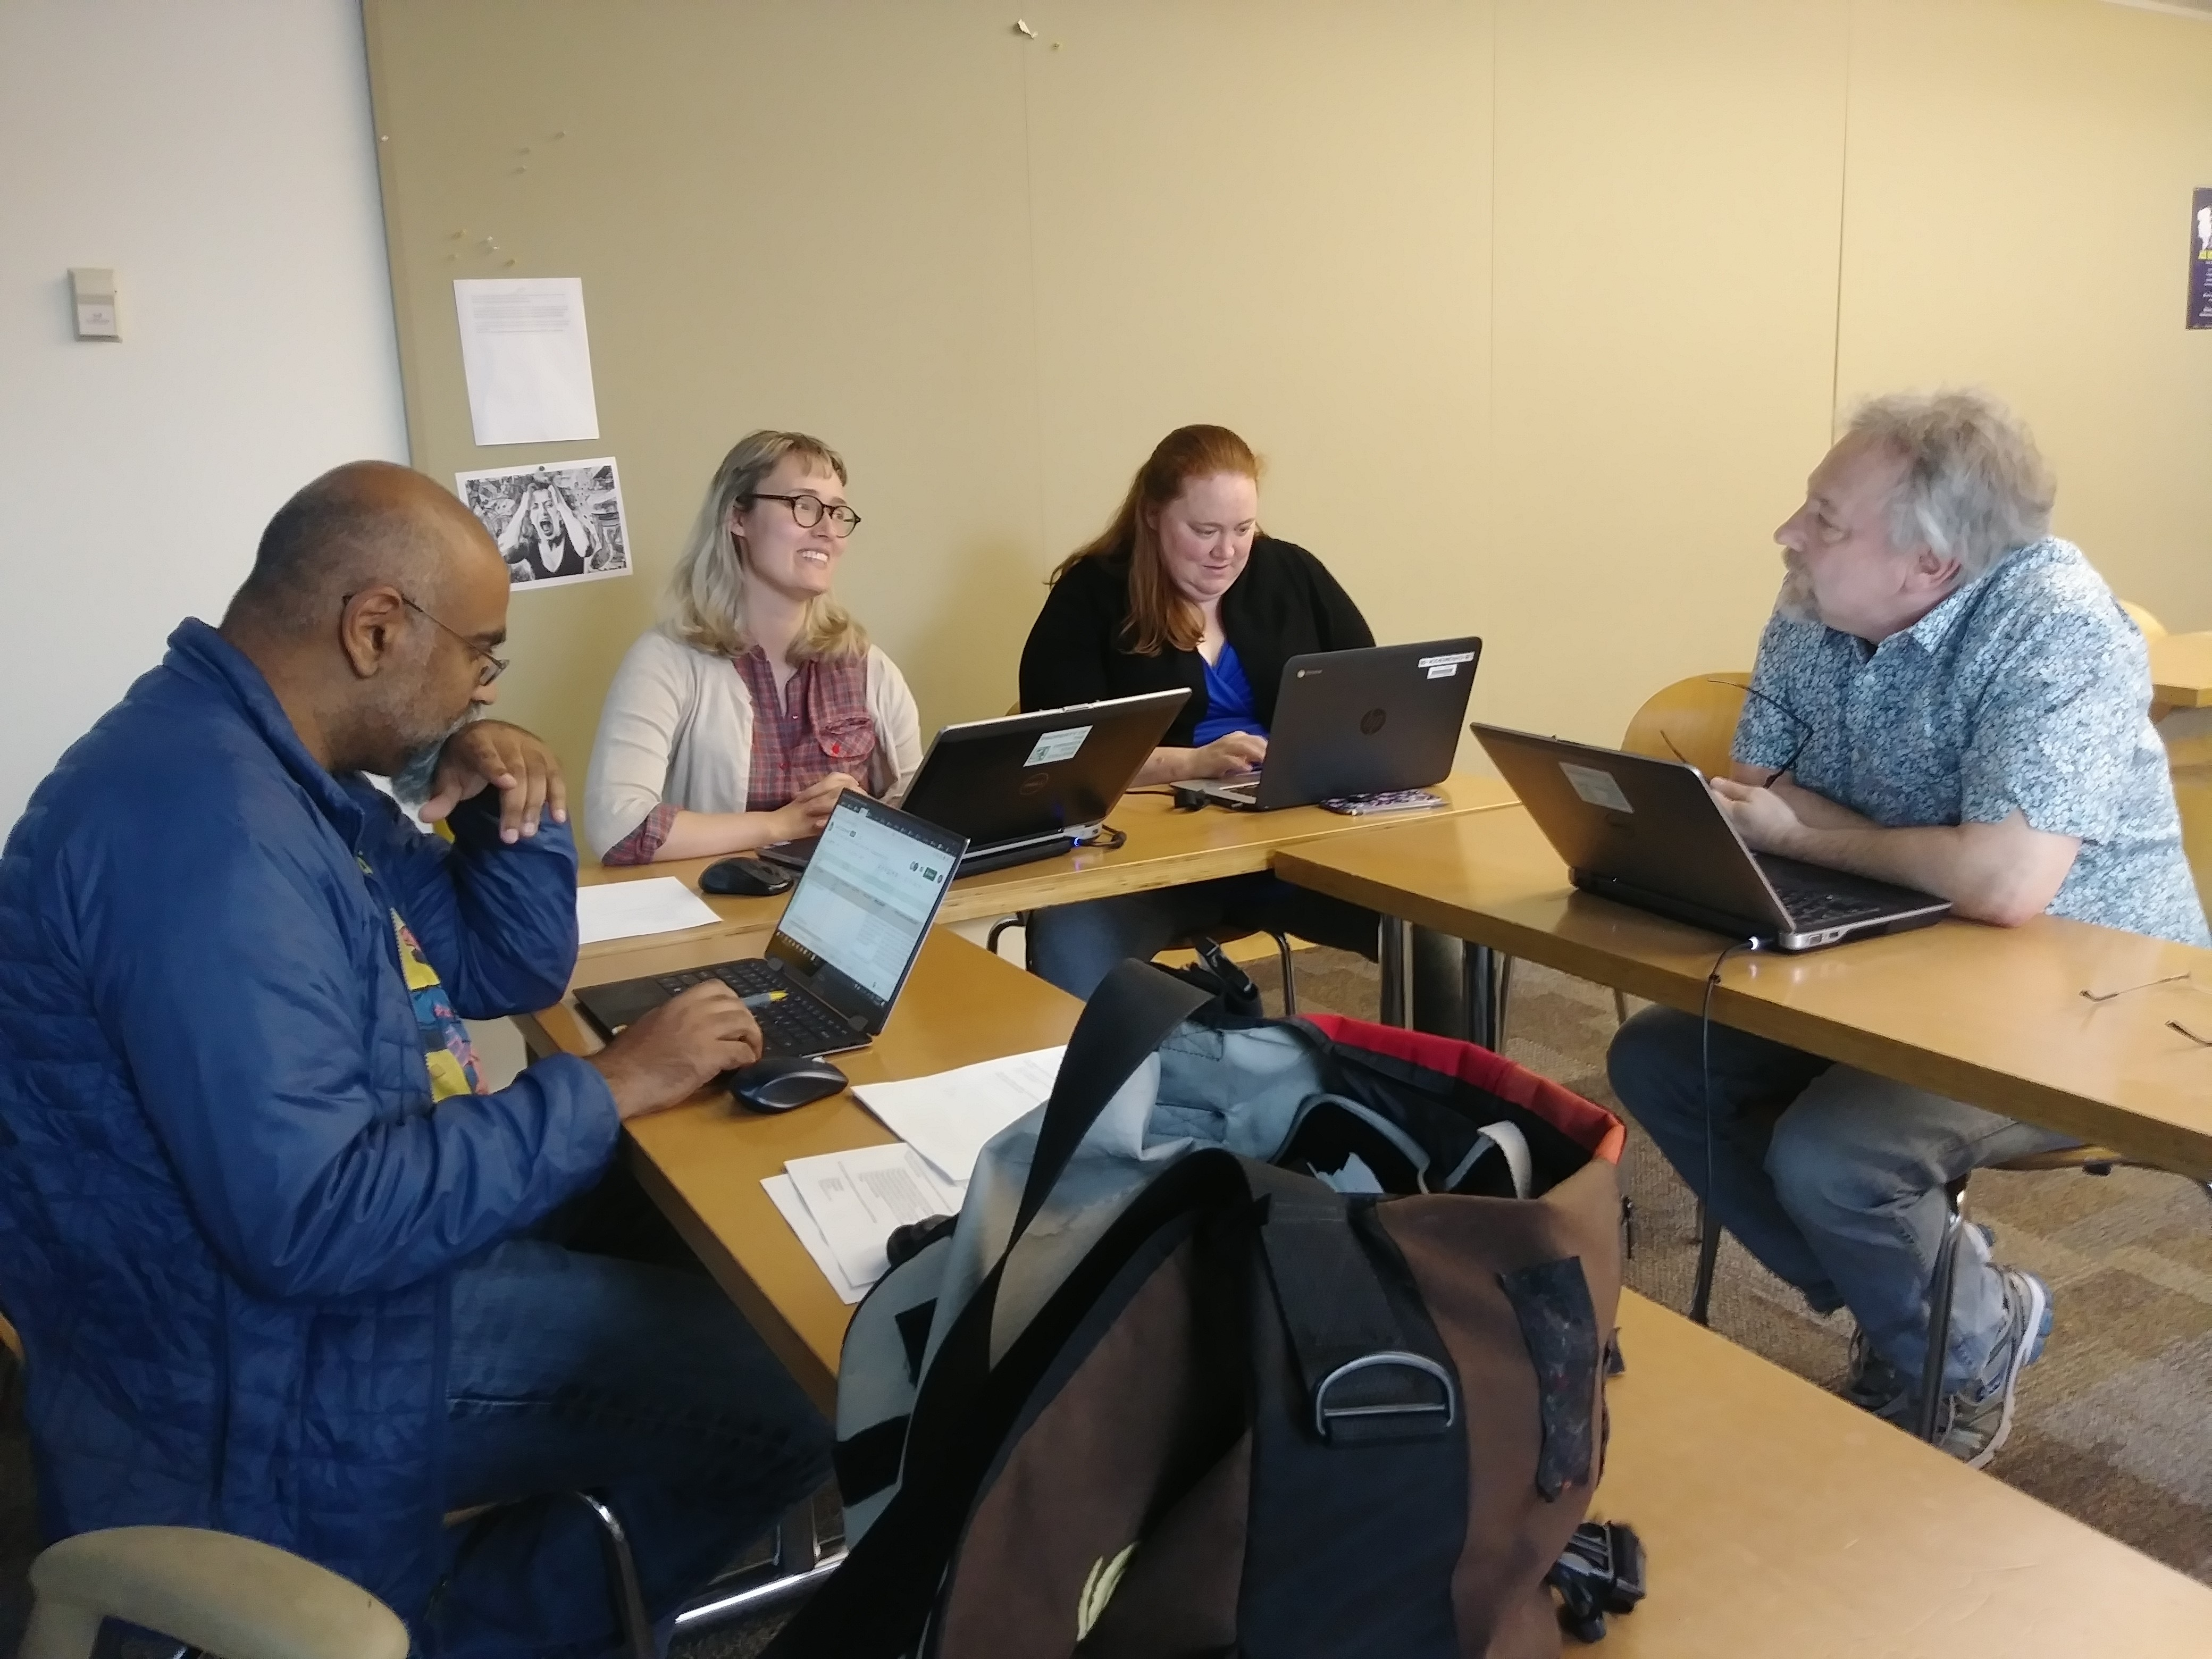 Academic statement group at work